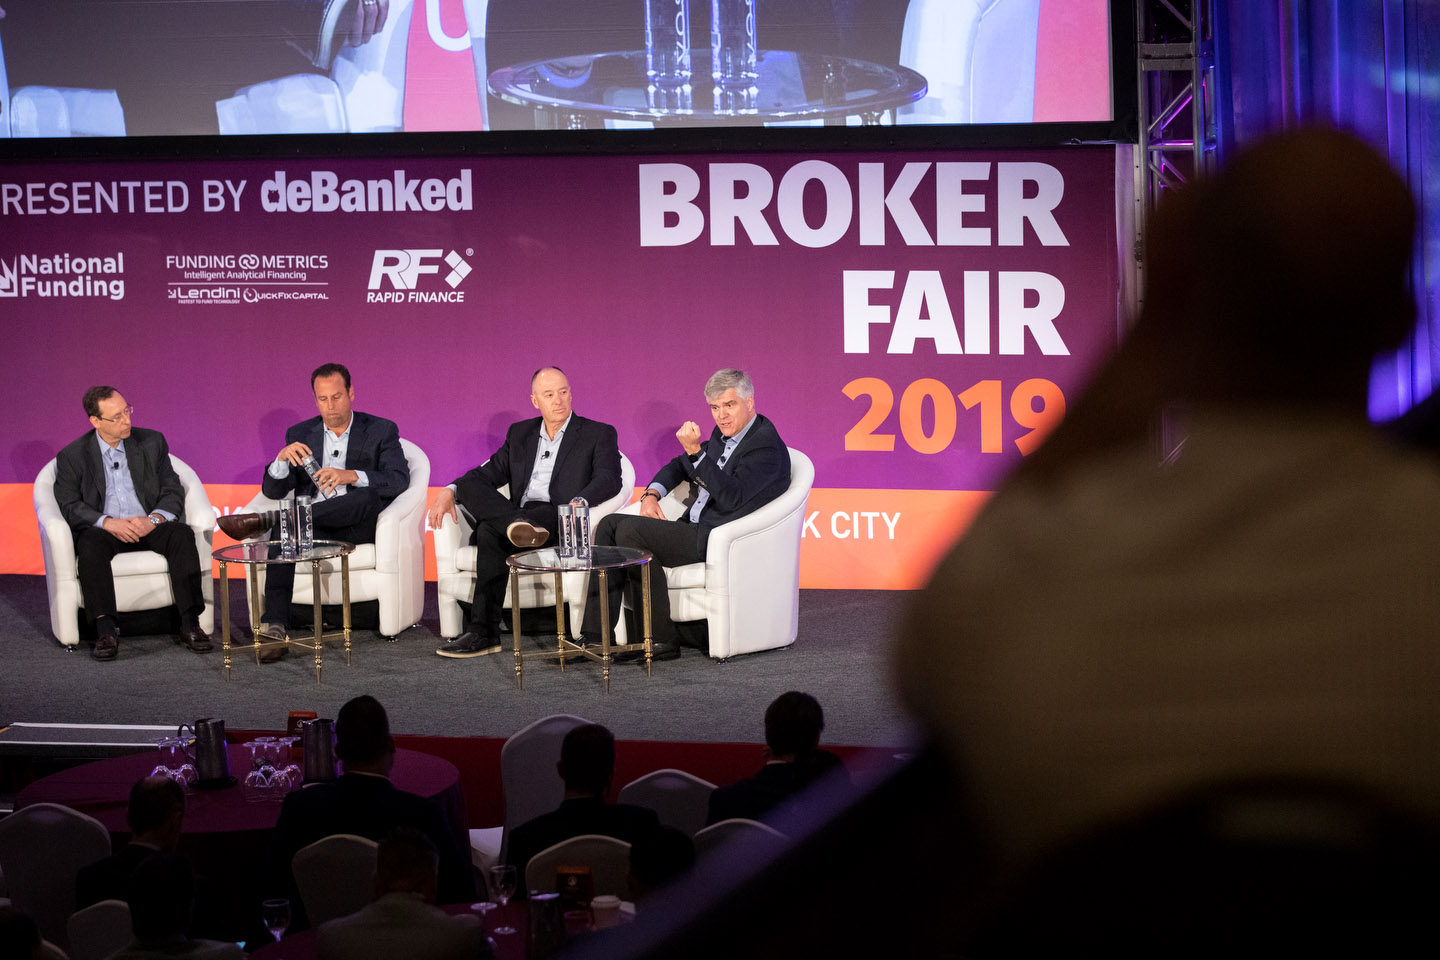 Broker Fair 2019 - Presented by deBanked - 423